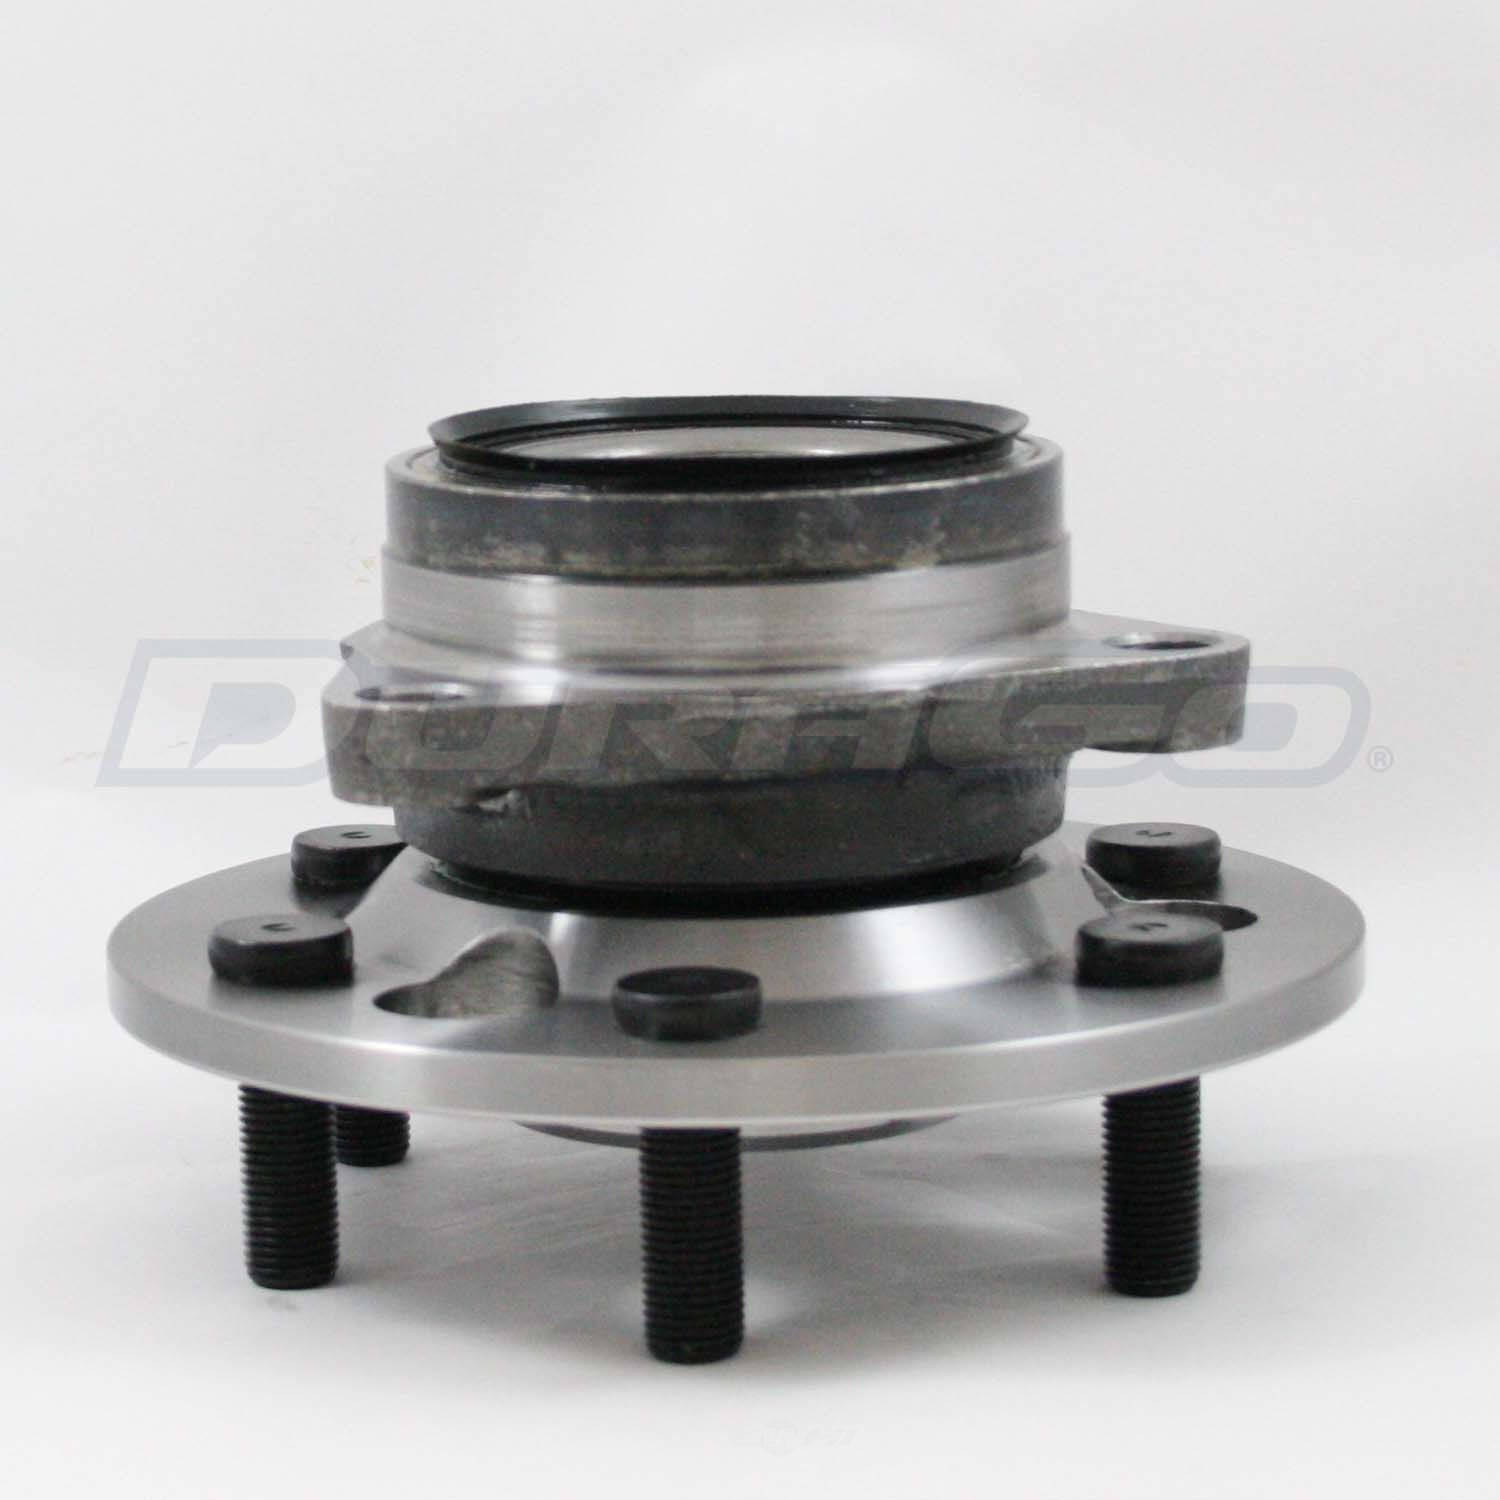 DURAGO - Axle Bearing and Hub Assembly - D48 295-15002